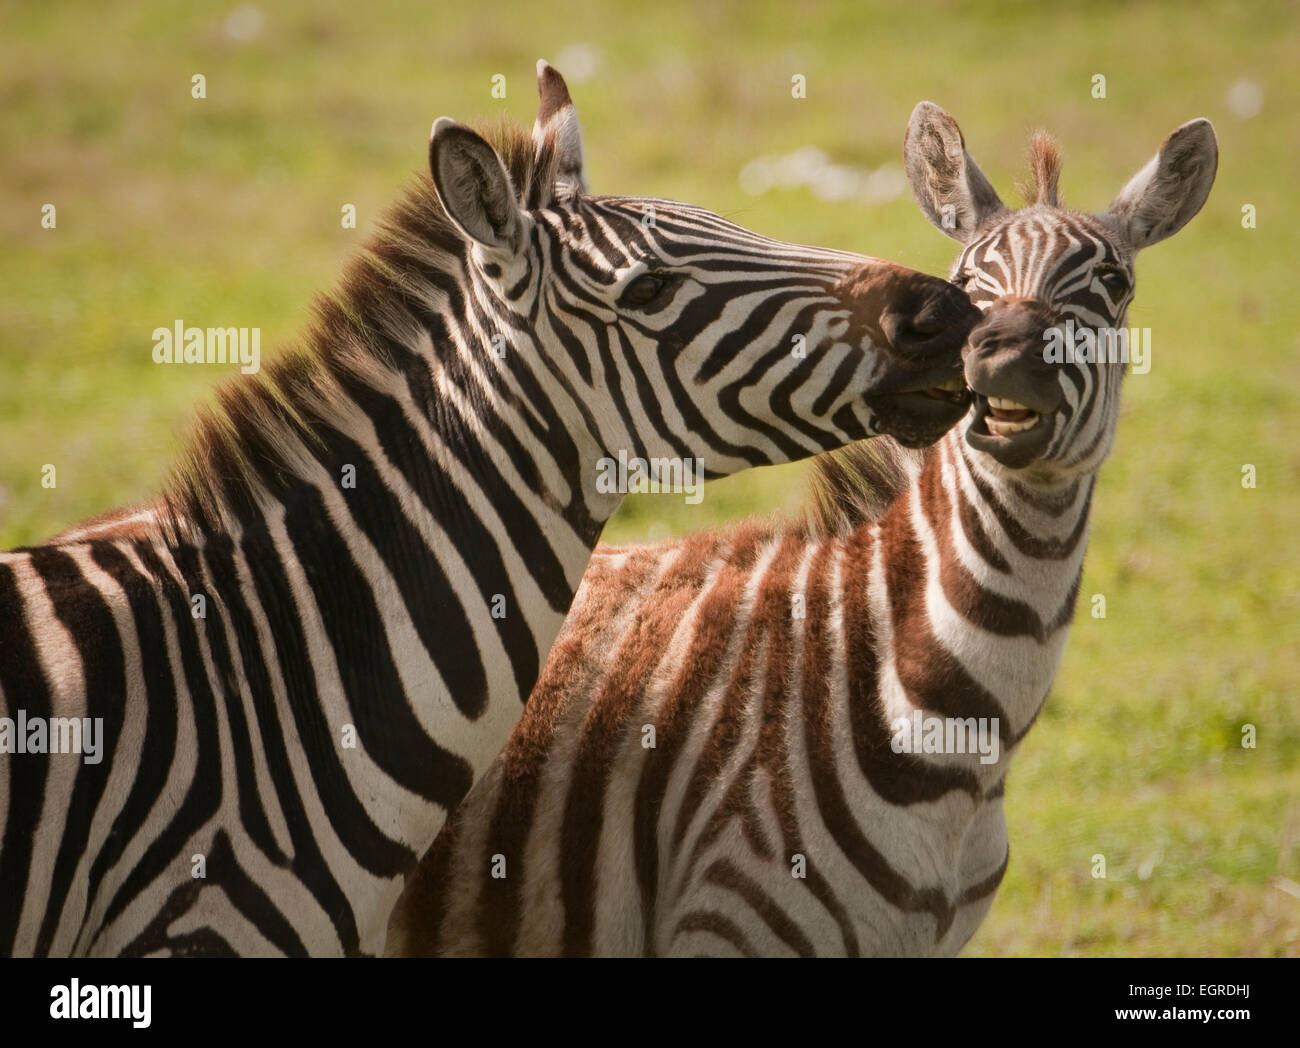 Close up of adult Burchell's zebra touching younger one-showing dominance - Stock Image